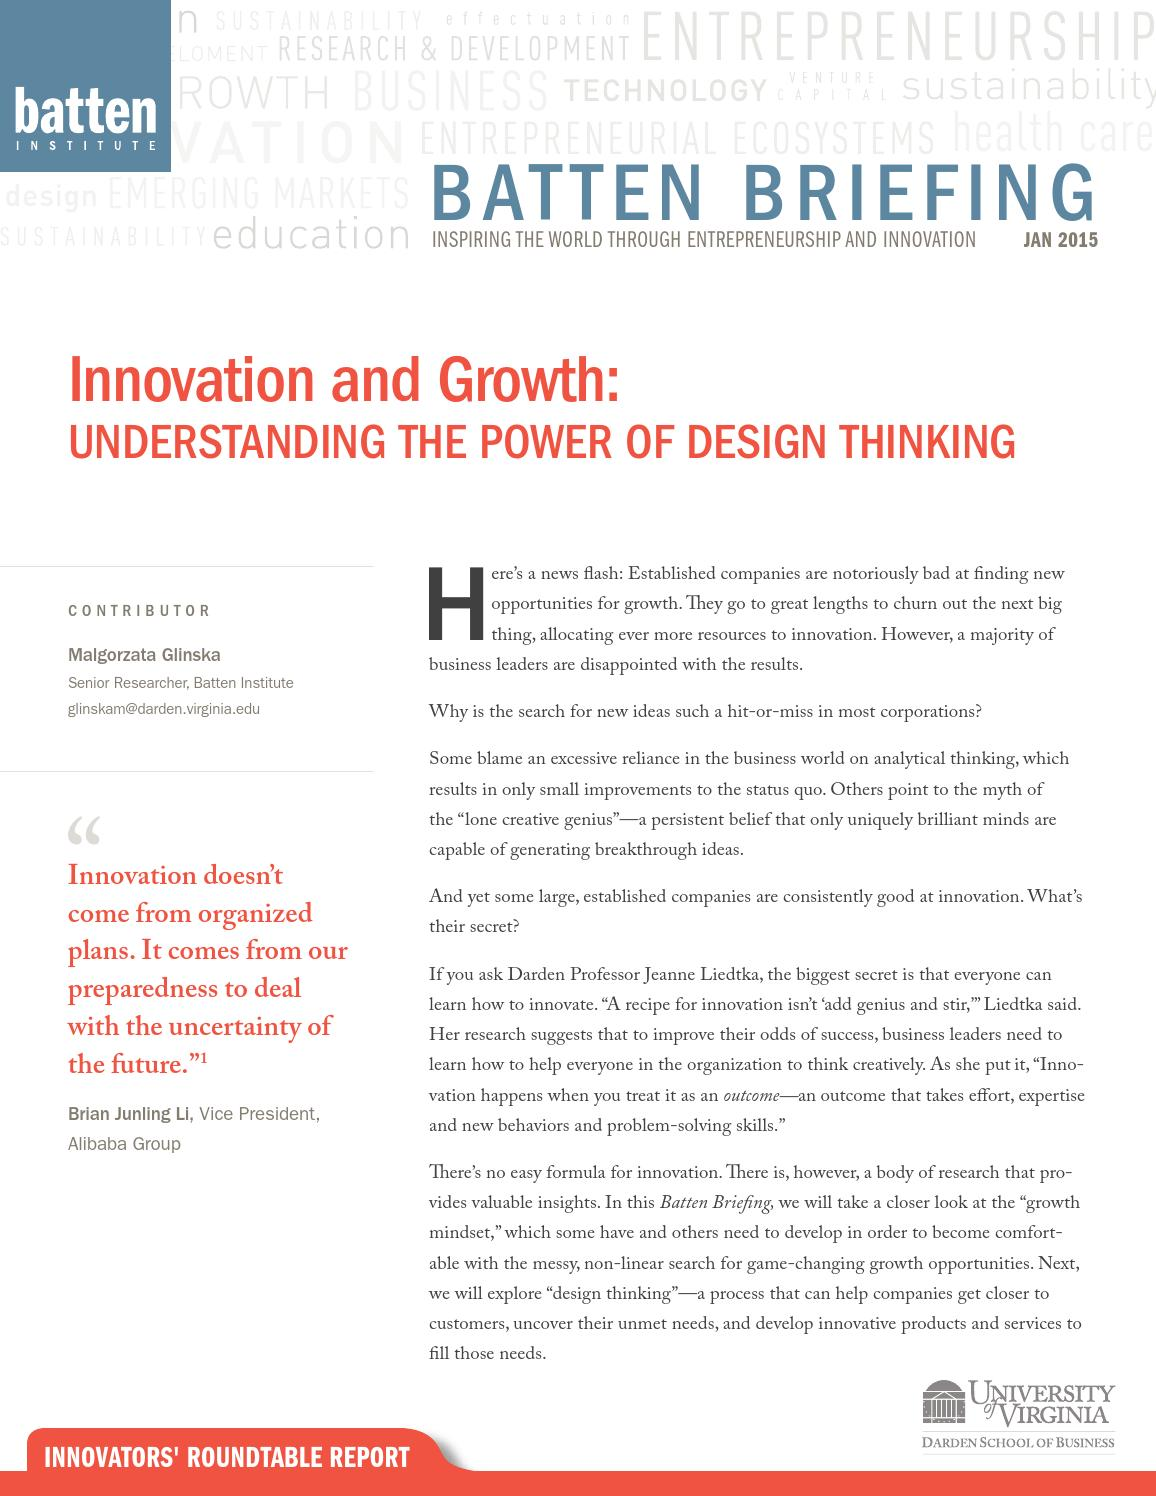 Batten Briefing: Understanding the Power of Design Thinking by ...